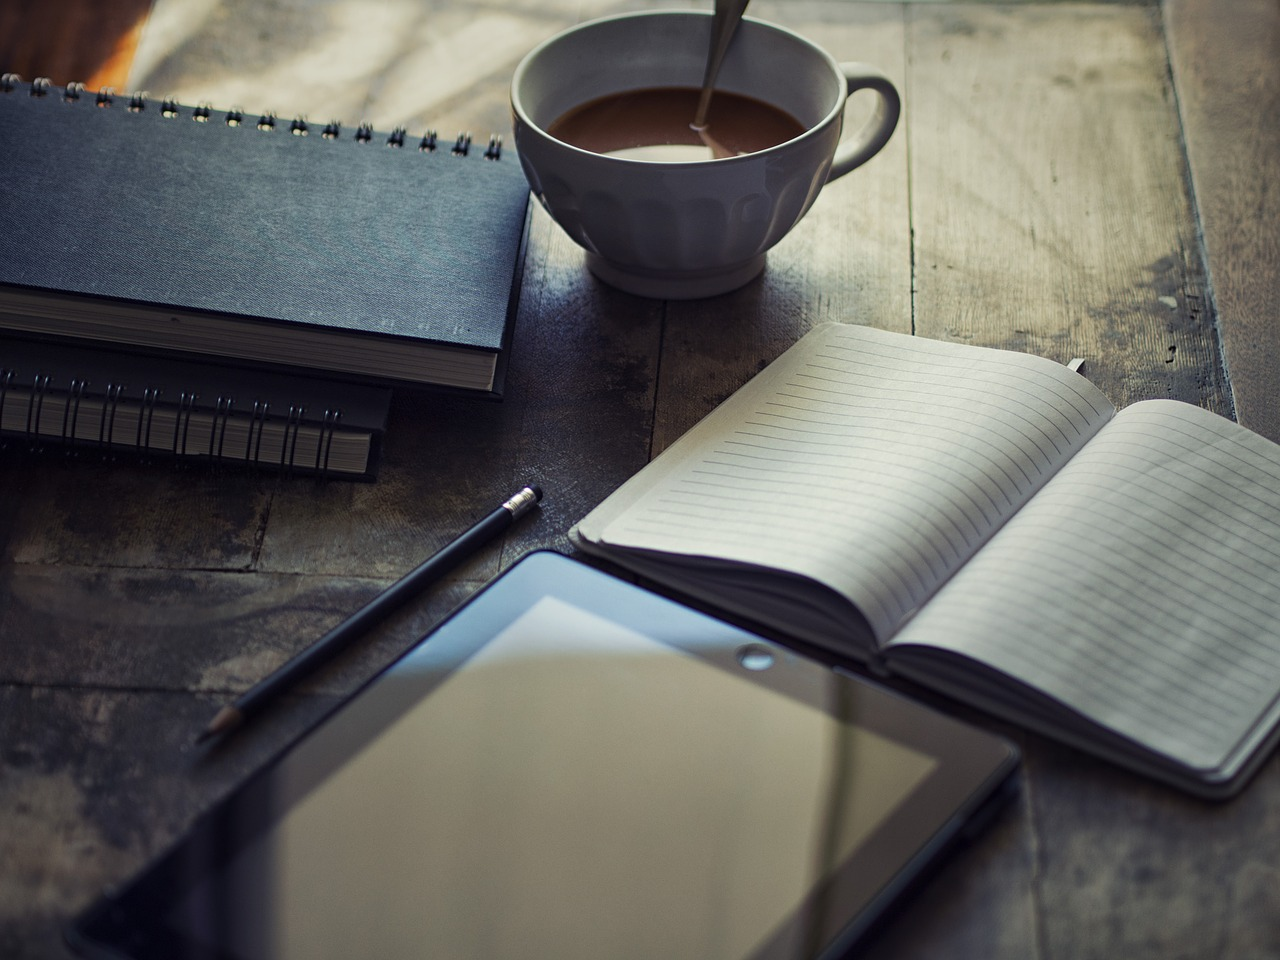 20 Must-Have Content Marketing Tools for Writing Better Blog Posts